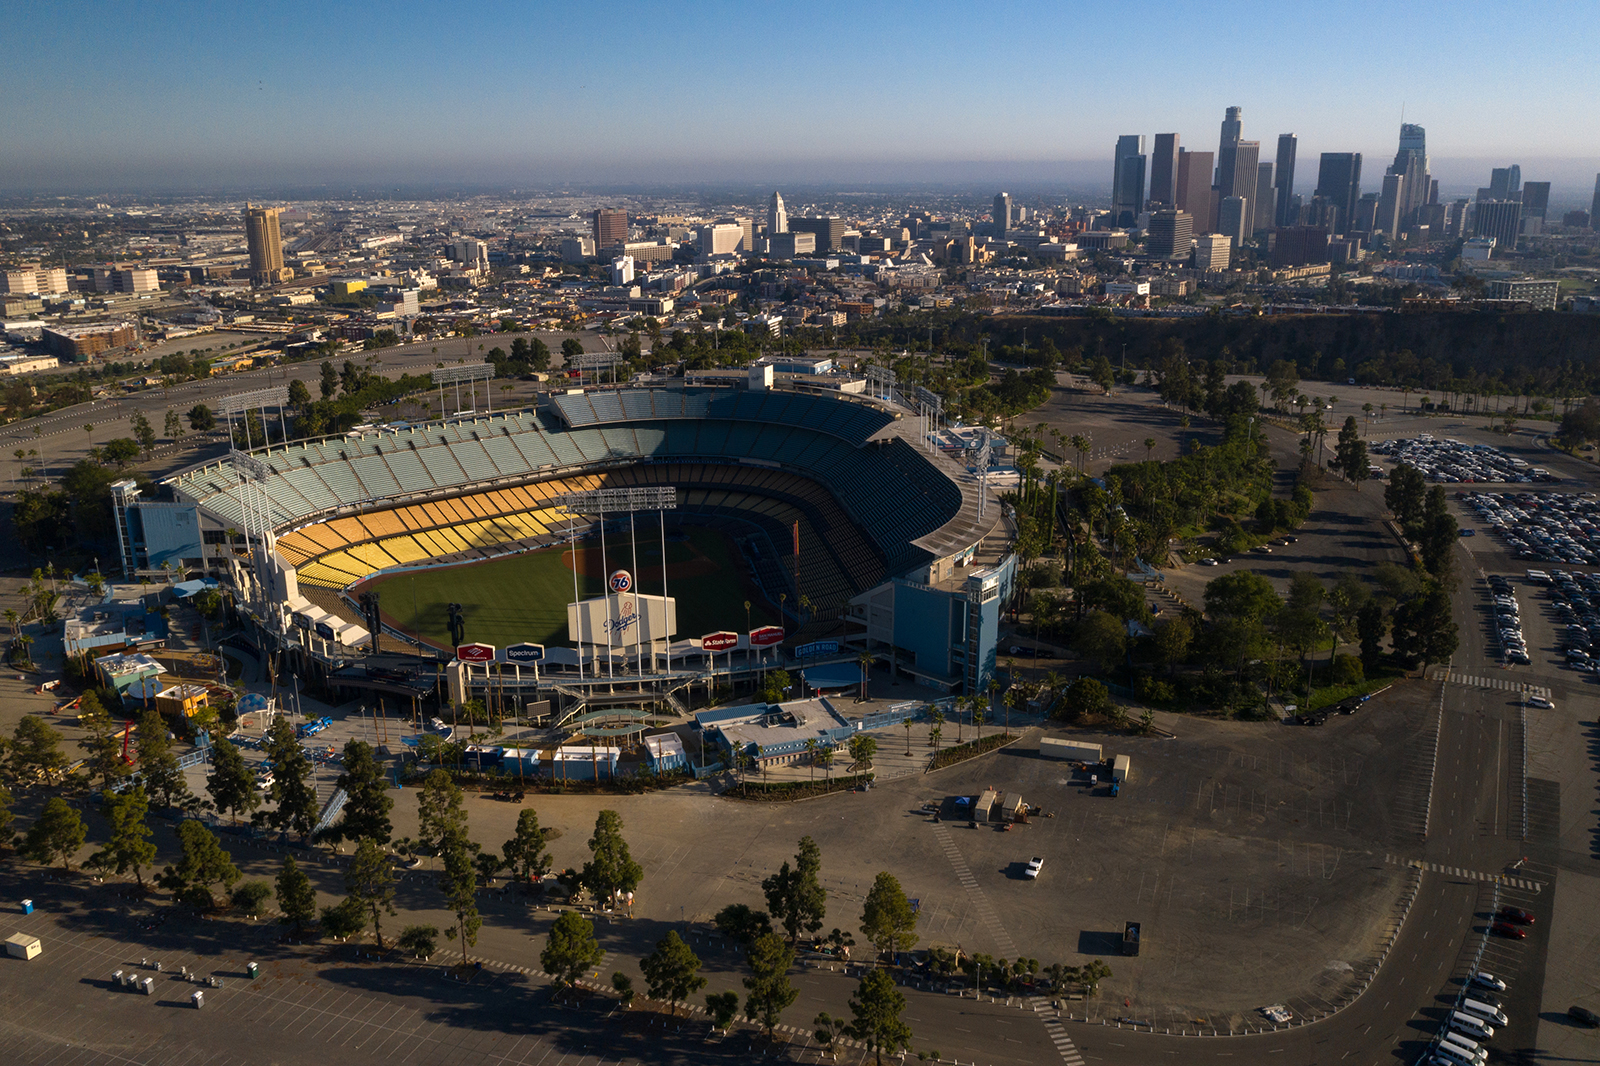 Dodger Stadium stands in this aerial photograph taken over Los Angeles.